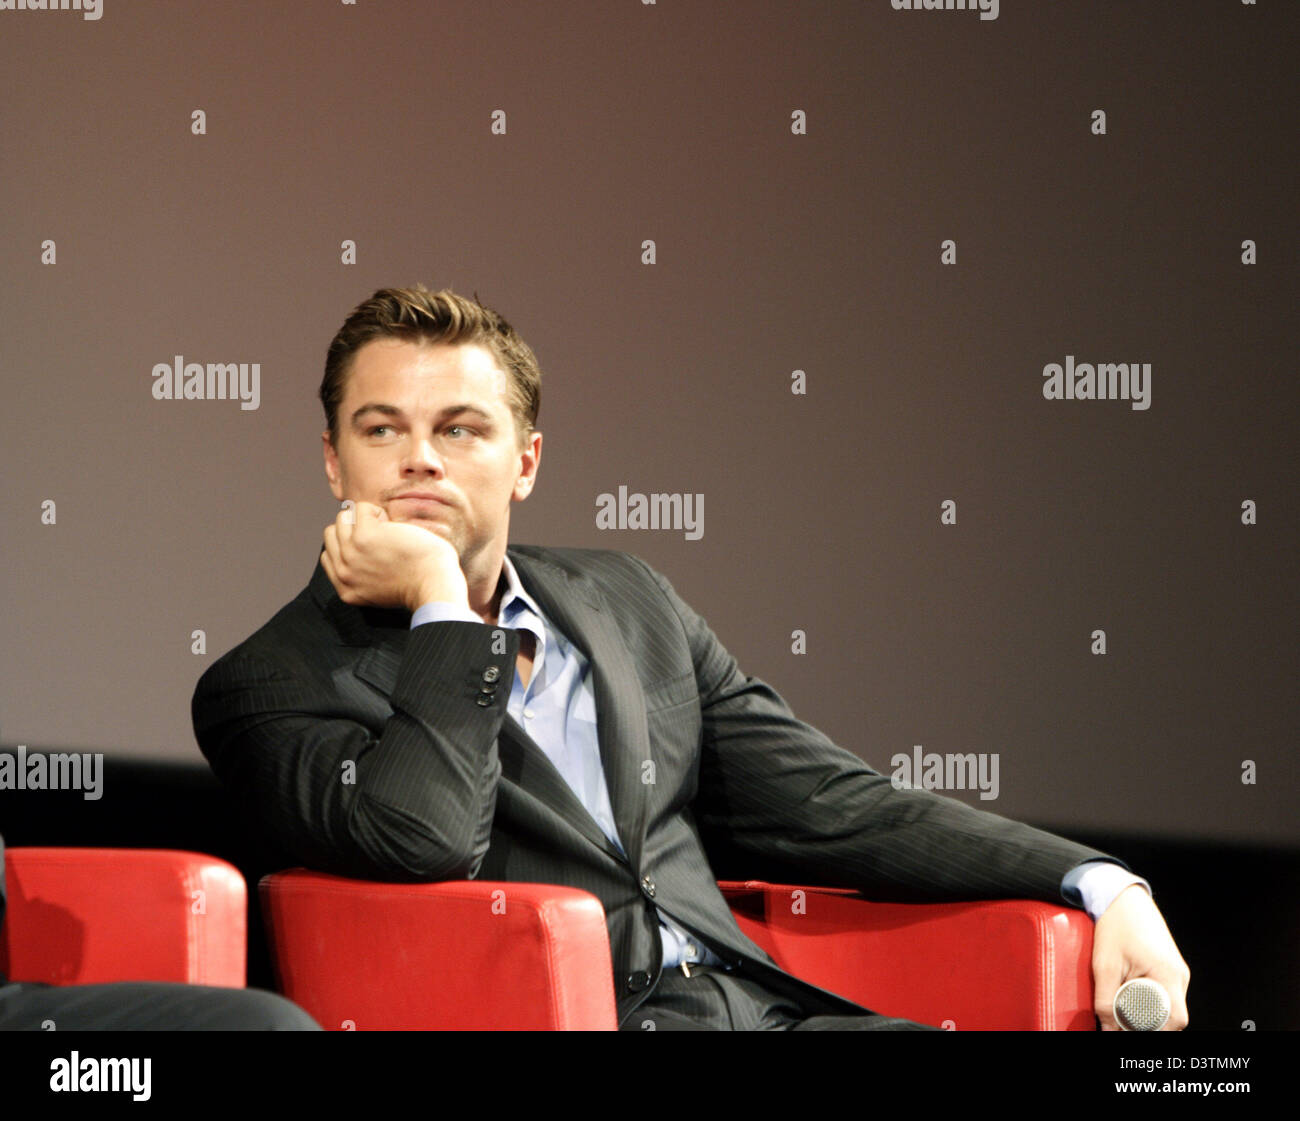 Leonardo Di Caprio presents his new movie 'The Departed' at the FilmFest in Rome, Italy, Sunday, 15 October - Stock Image